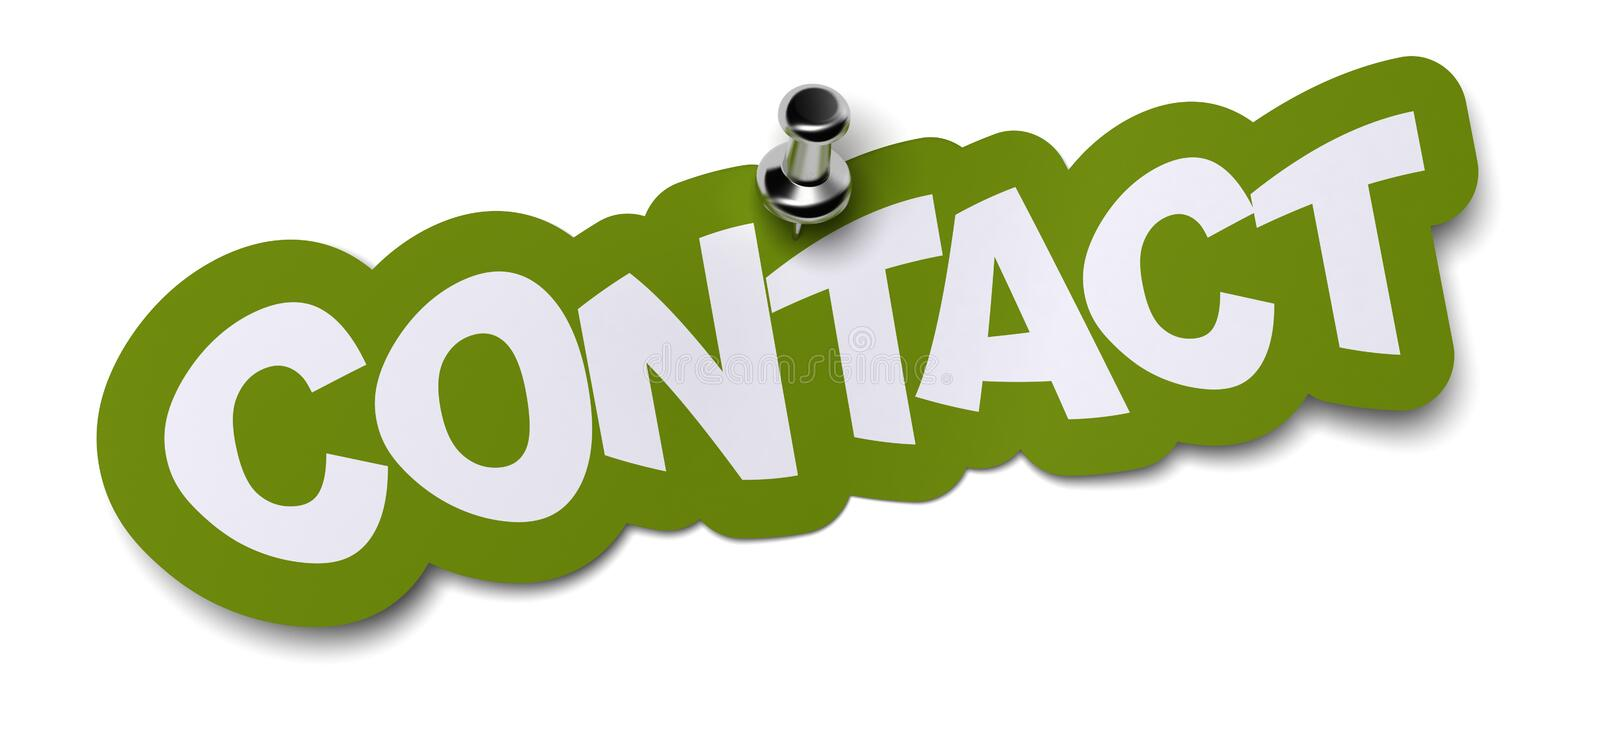 Contact sticker stock illustration